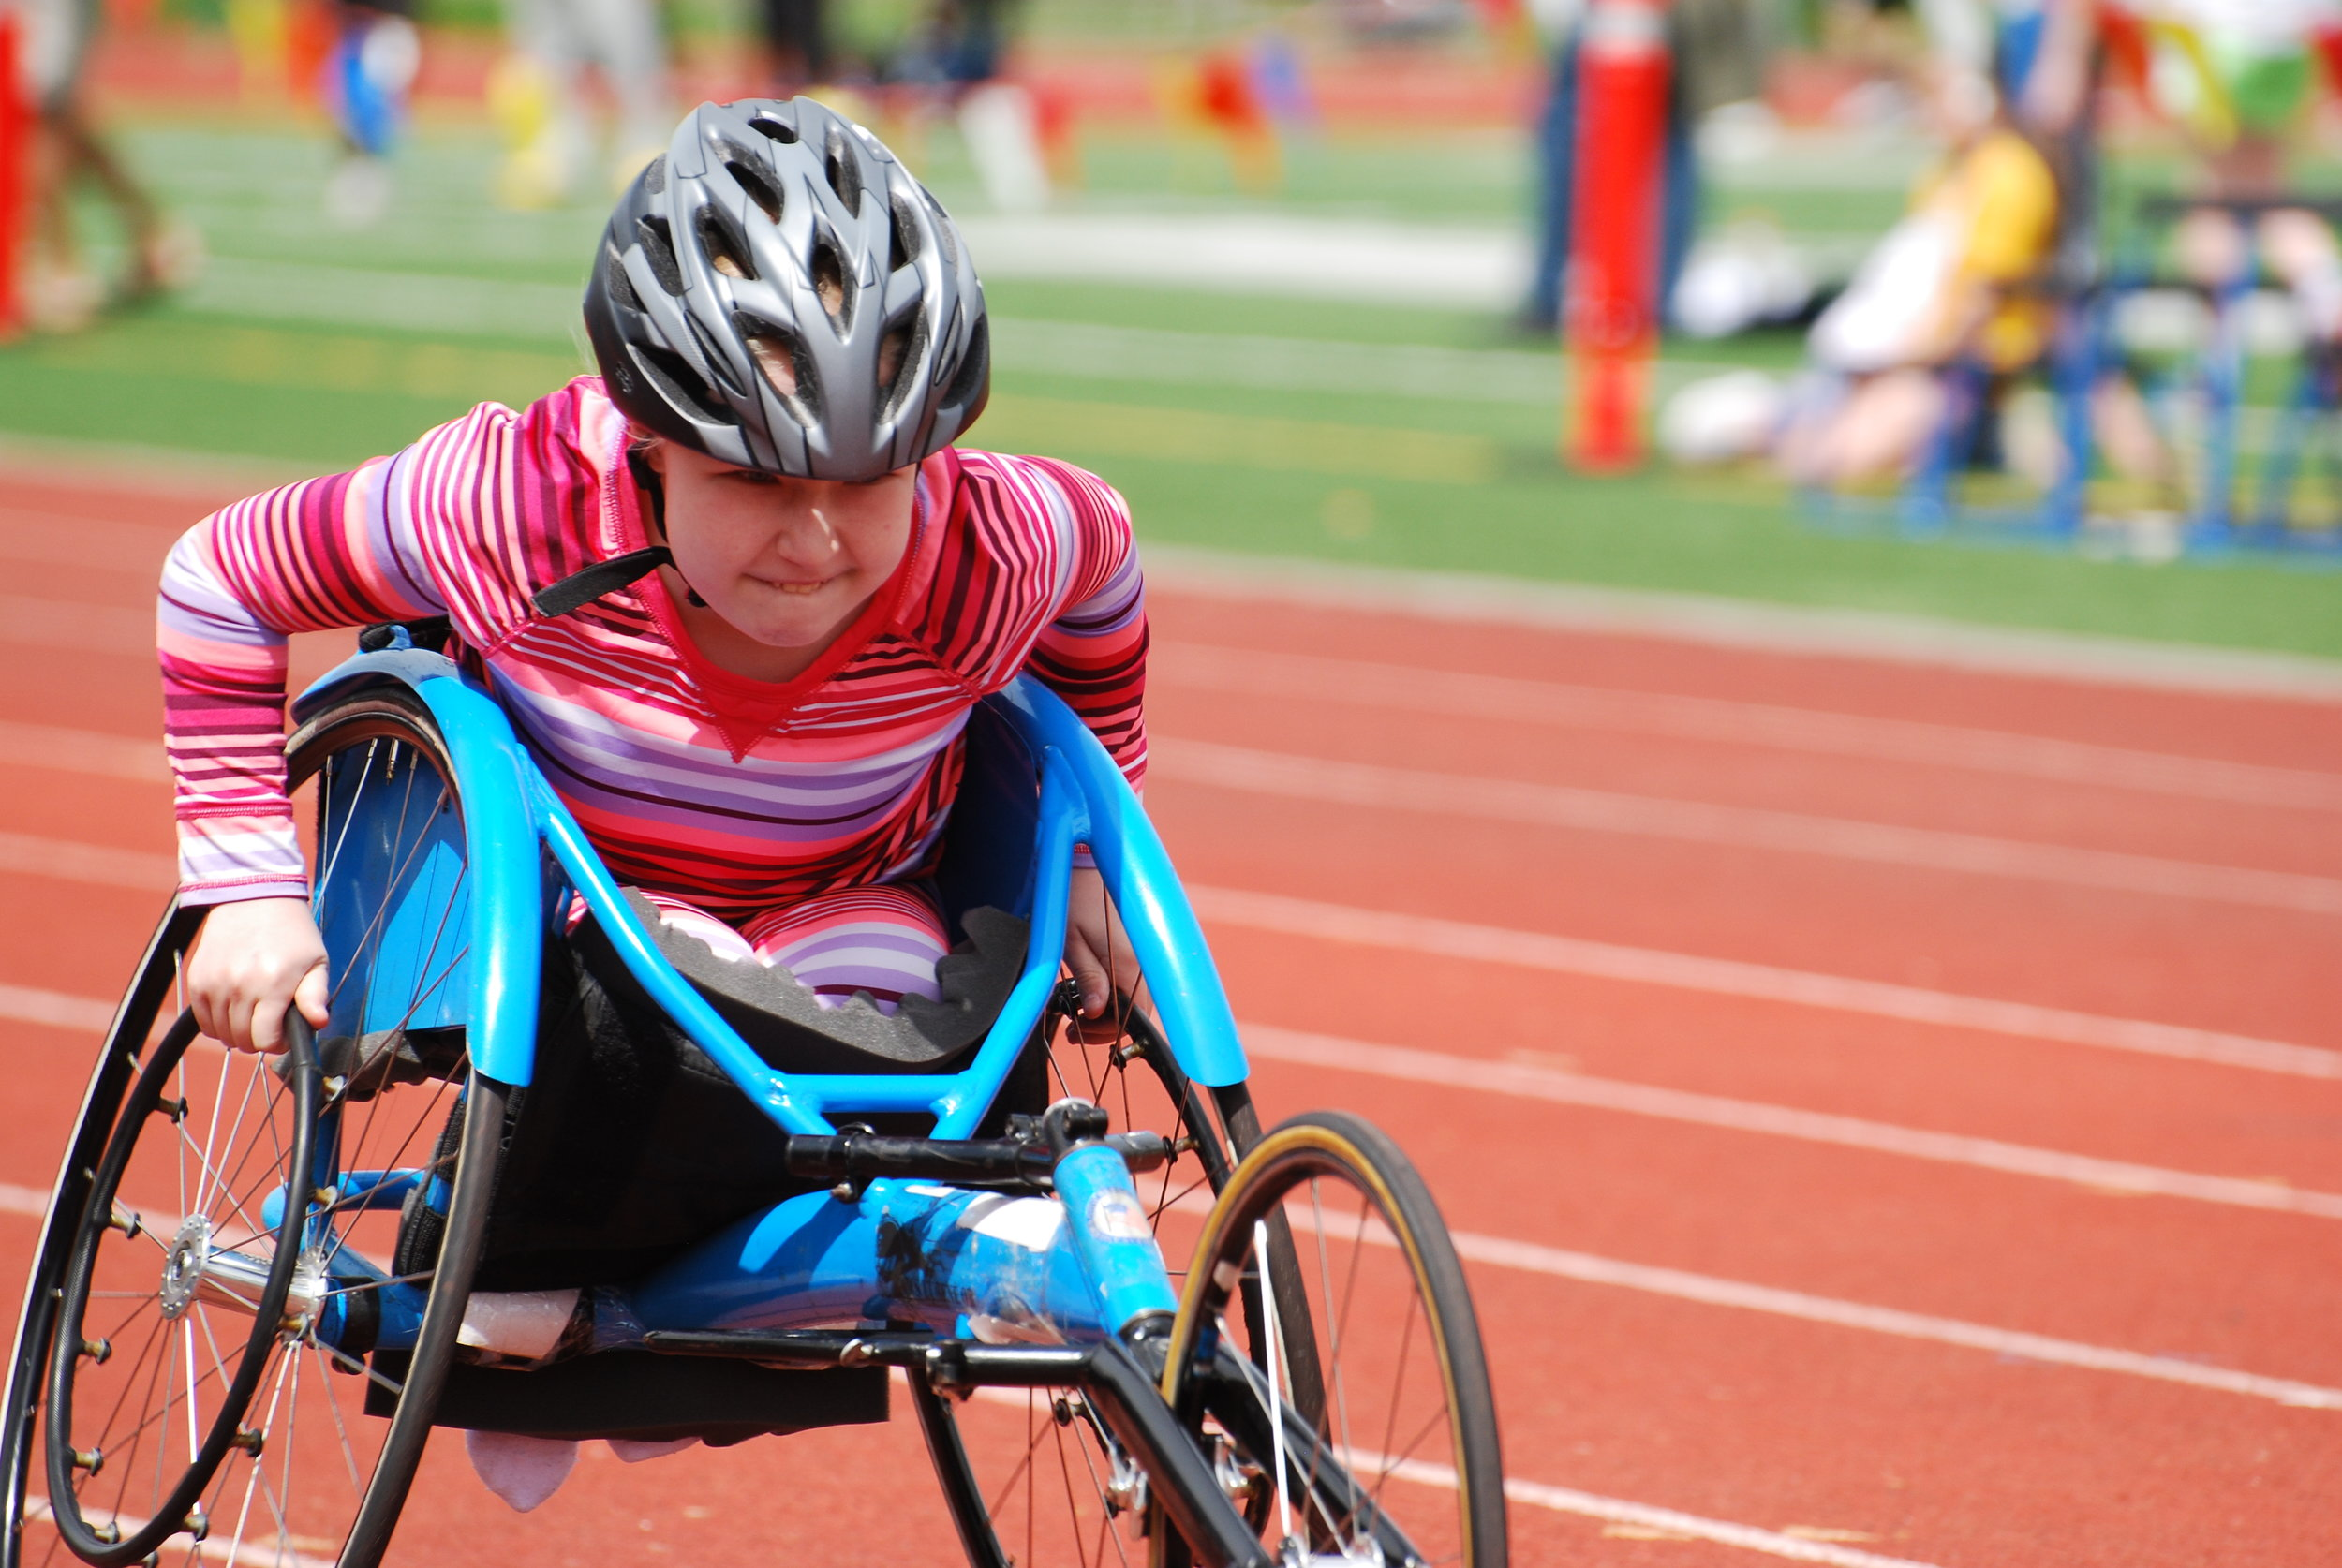 Events for Adaptive Athletes